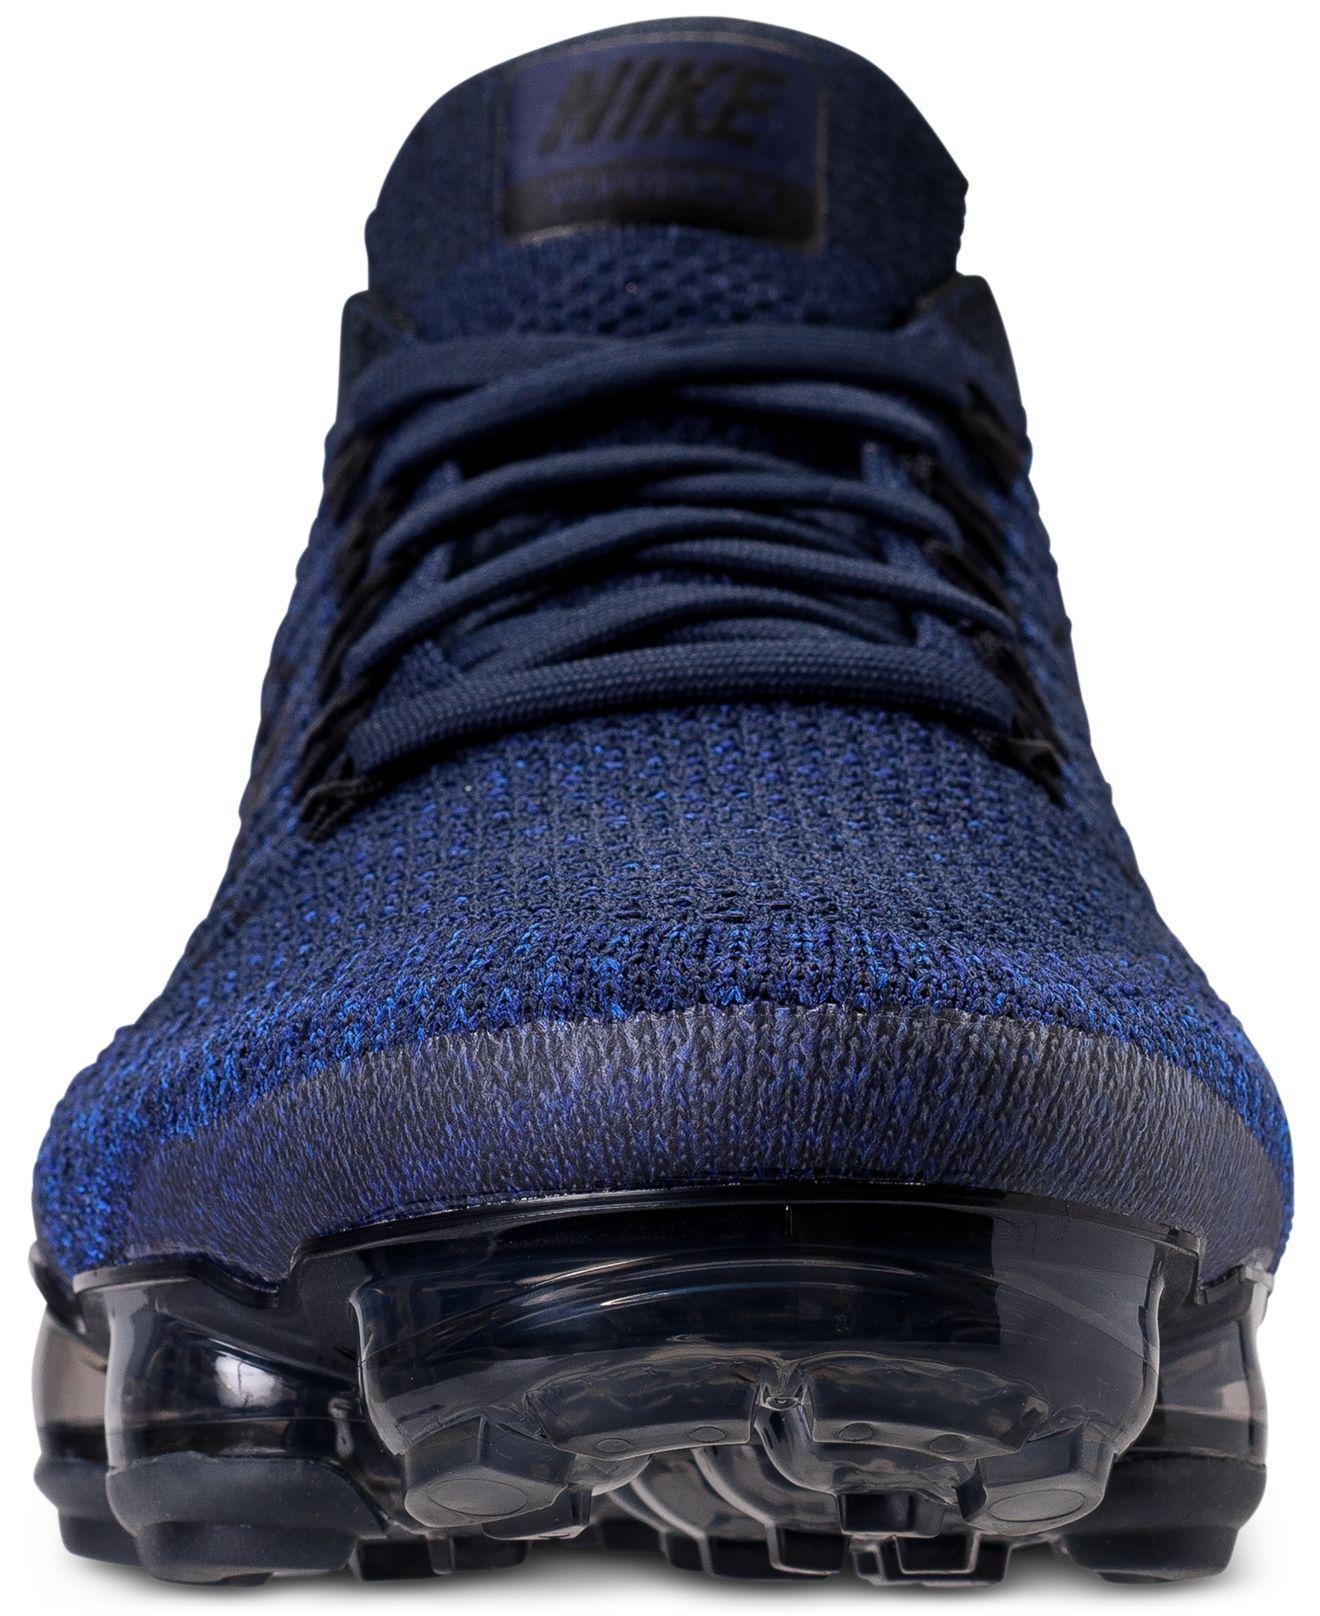 1338aef66538 Lyst - Nike Men s Air Vapormax Flyknit Running Sneakers From Finish ...